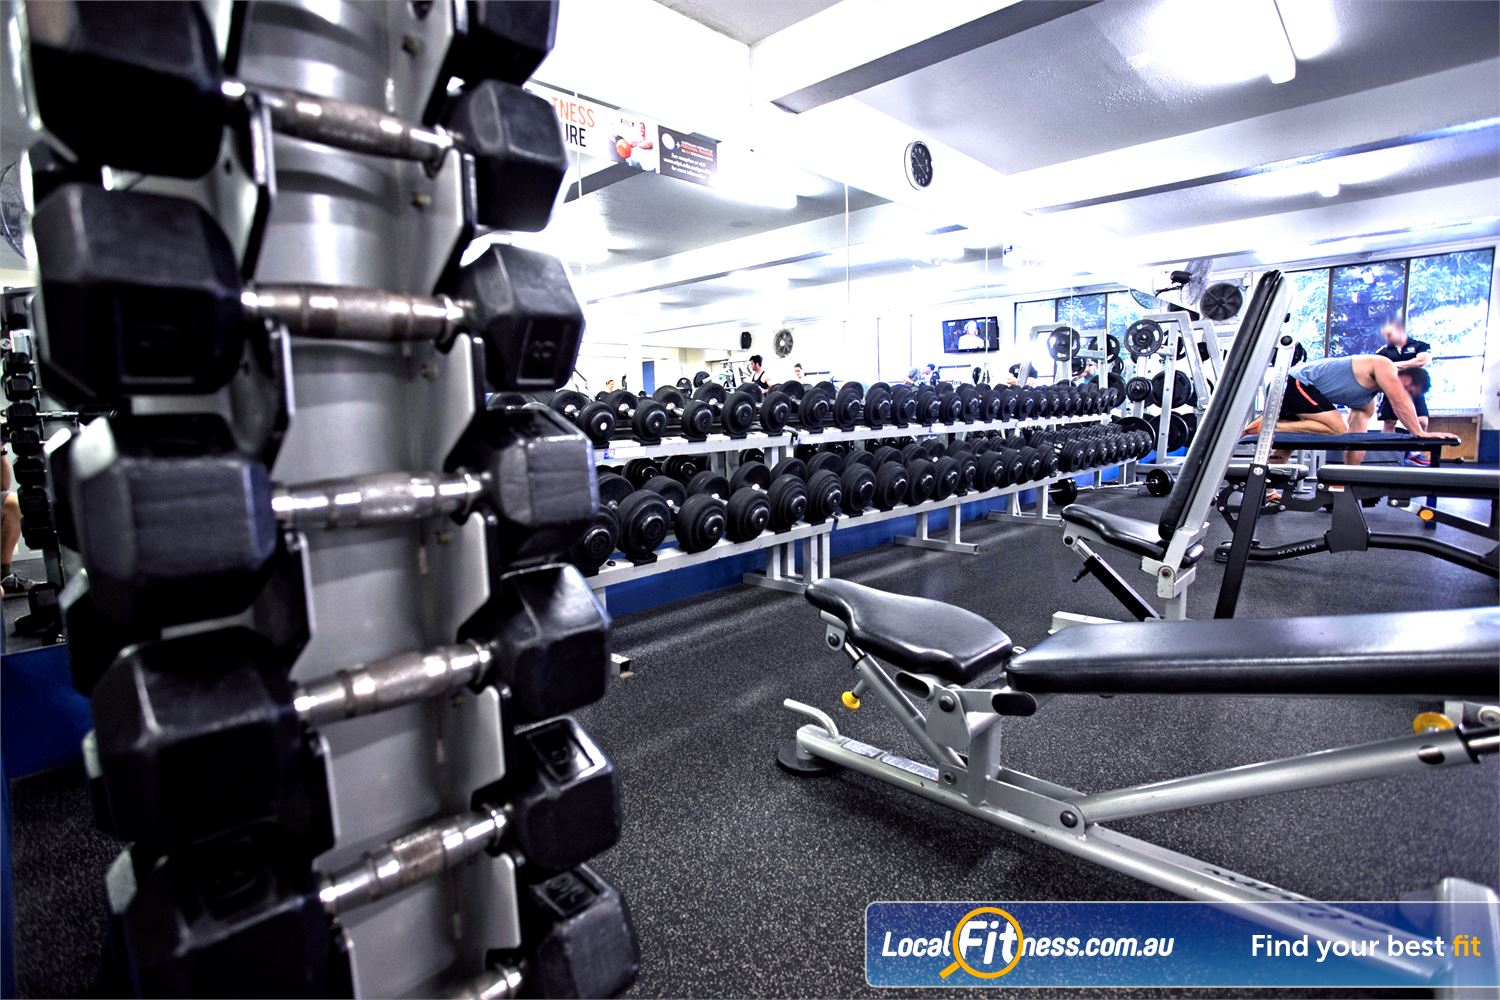 Goodlife Health Clubs Mitcham Near Torrens Park Our Kingswood gym includes a comprehensive range of dumbbells and barbells.